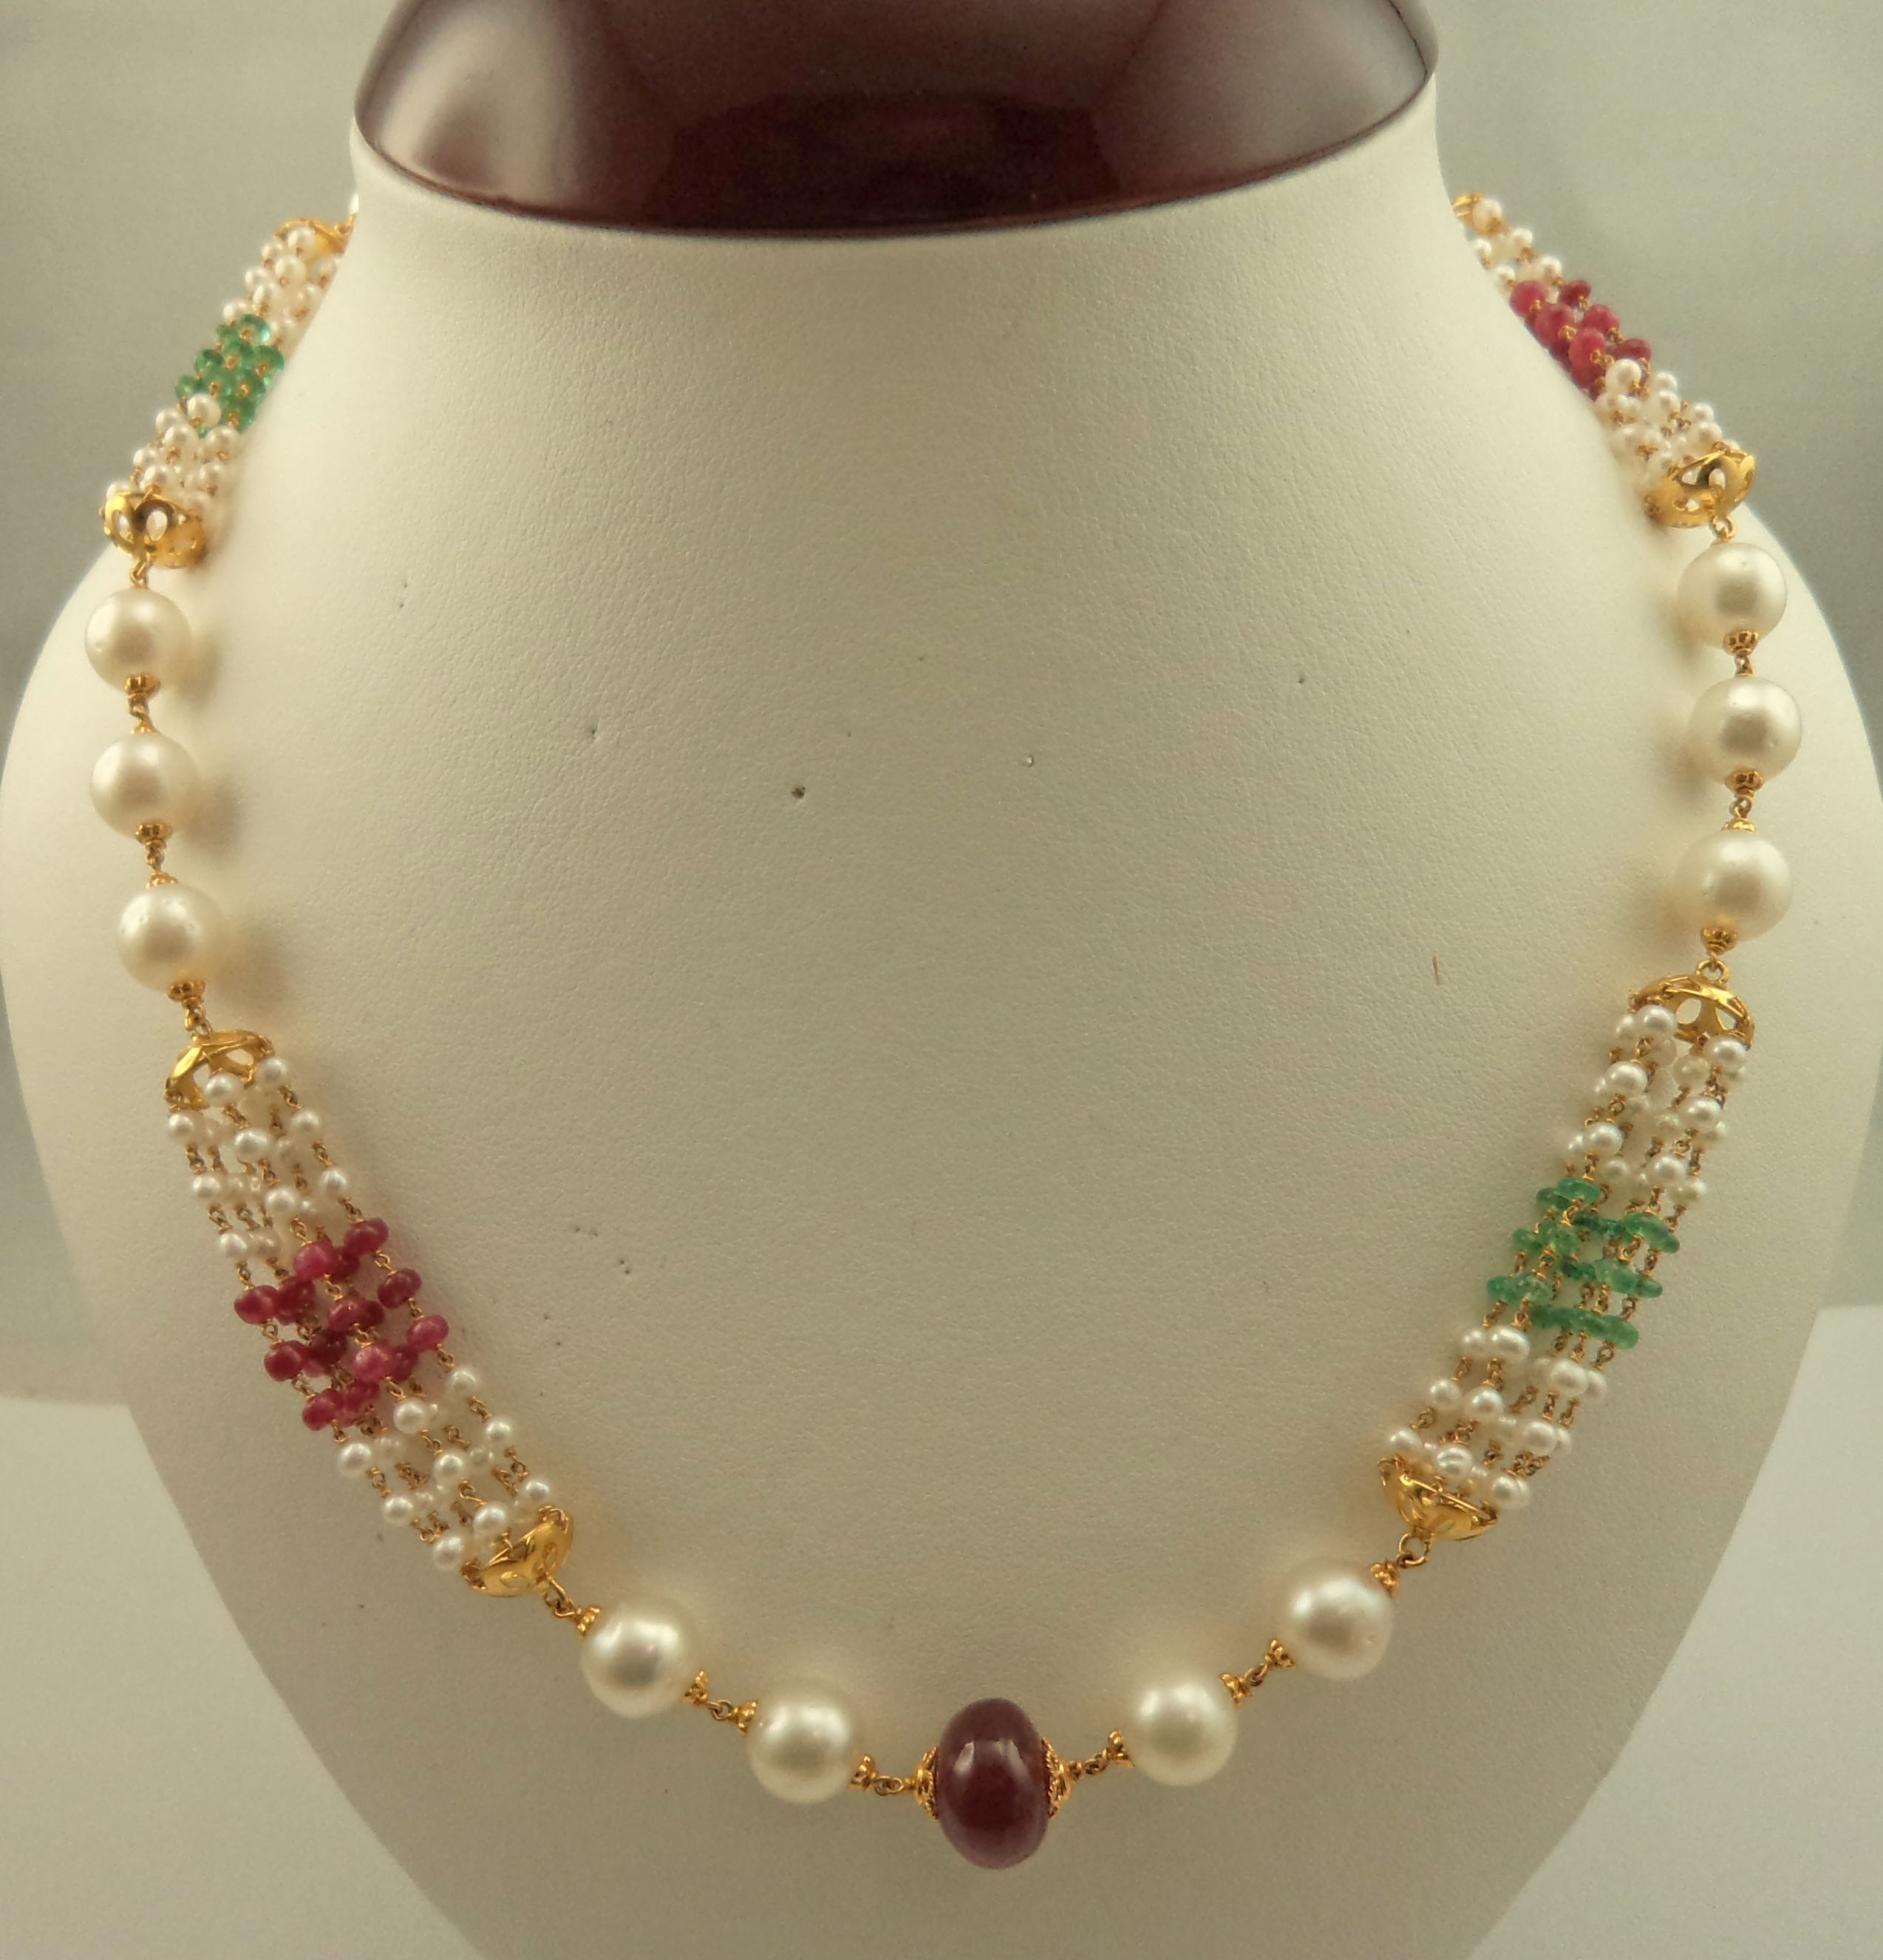 22 Karat Gold With Polki Pearl Emerald And Ruby Necklace